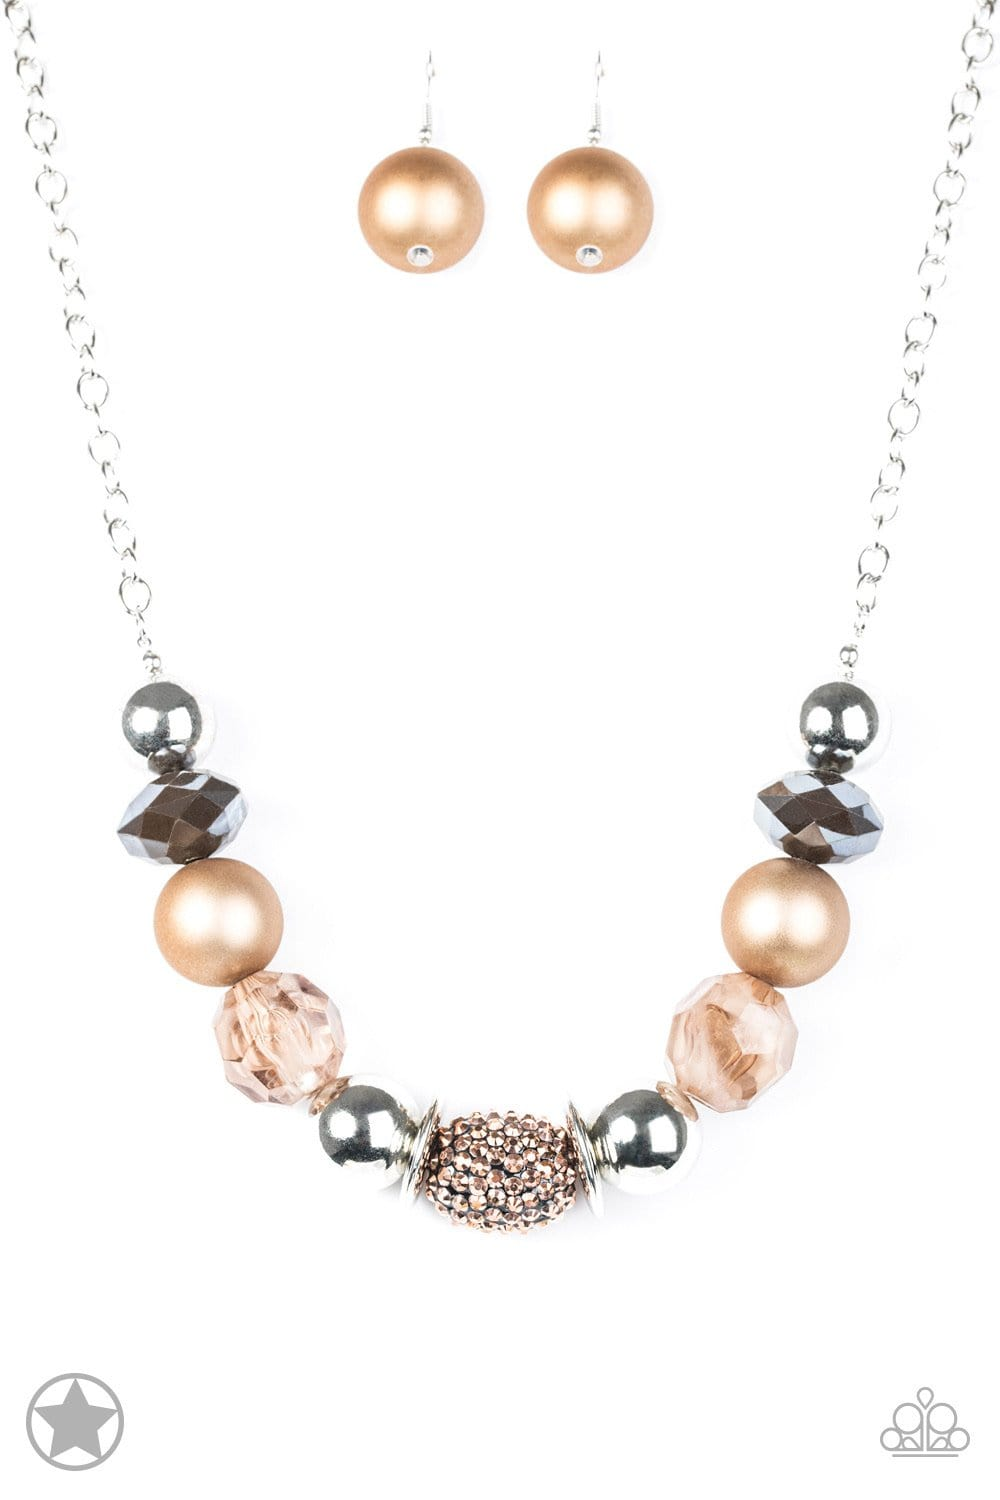 Paparazzi BLOCKBUSTERS: A Warm Welcome - Brown/Copper Necklace - Jewels N' Thingz Boutique